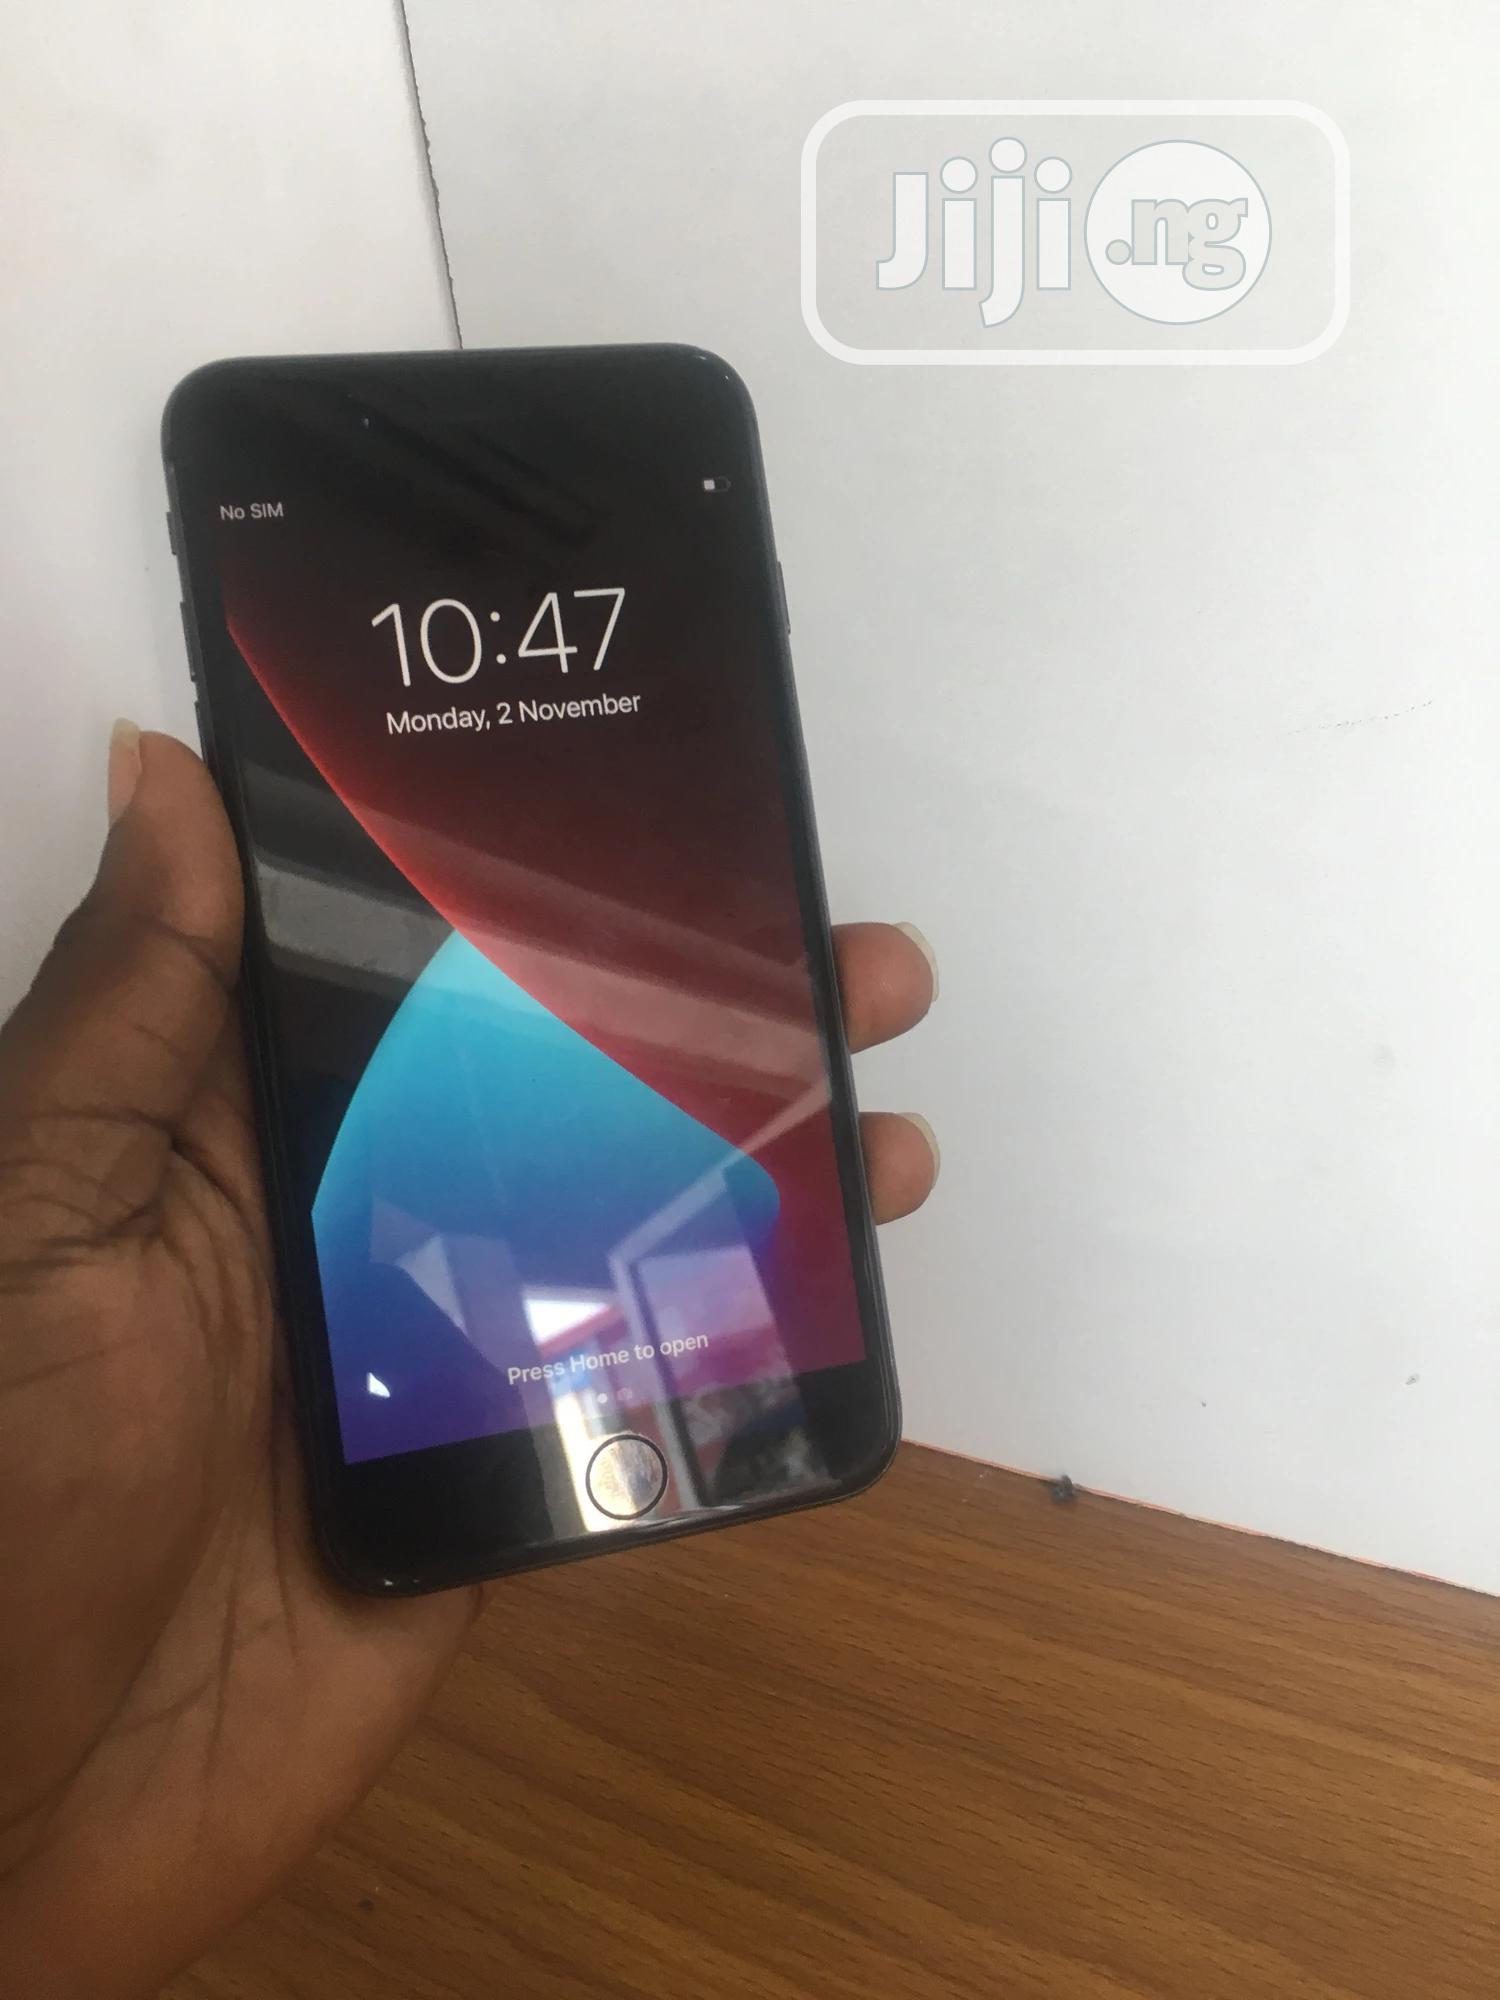 Apple iPhone 8 Plus 64 GB Black   Mobile Phones for sale in Wuse 2, Abuja (FCT) State, Nigeria